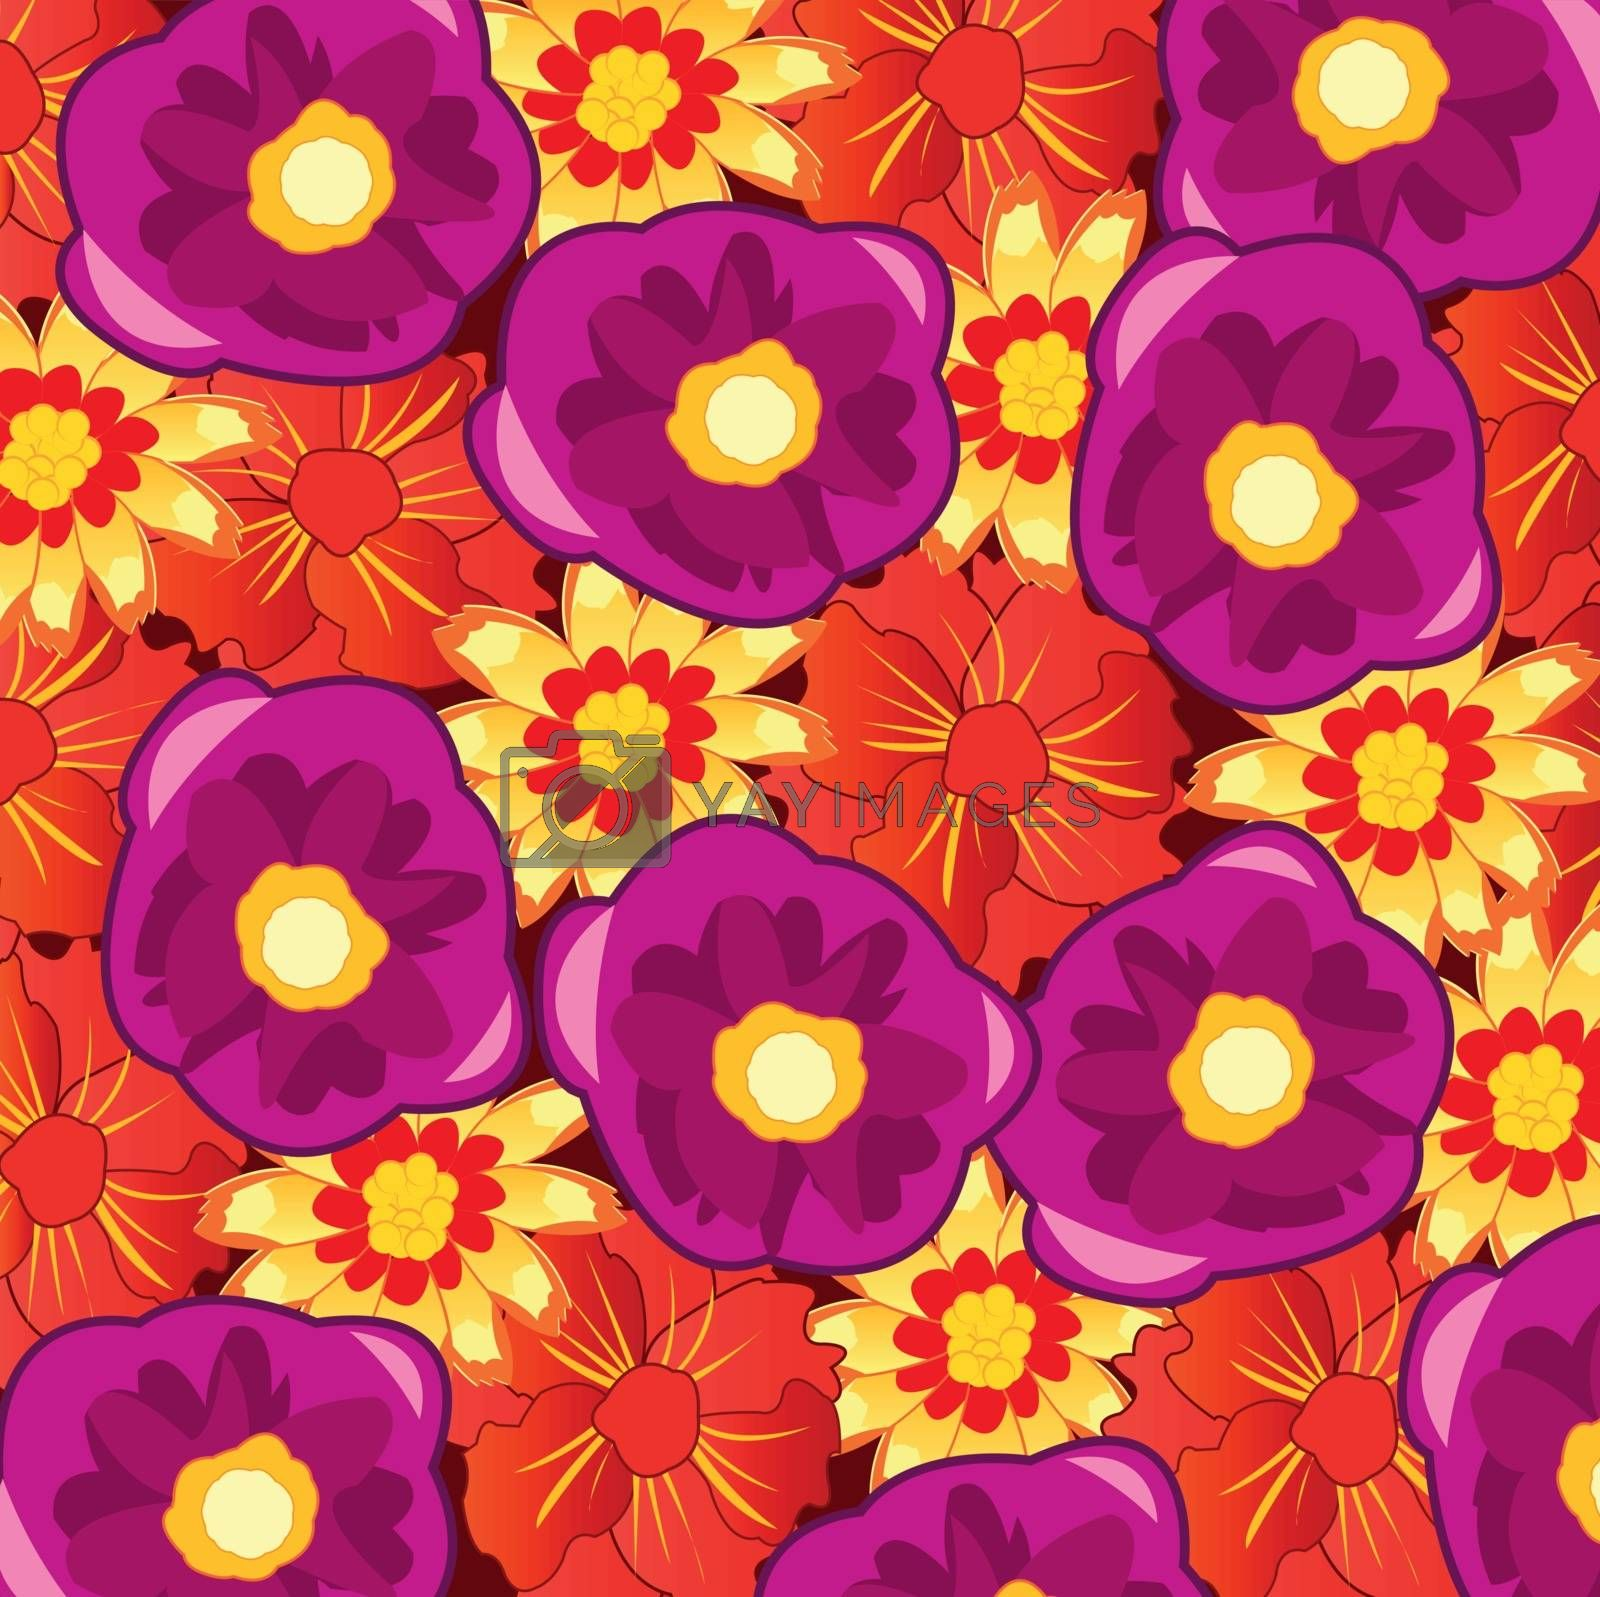 Royalty free image of Background from flower of the varied colour by cobol1964